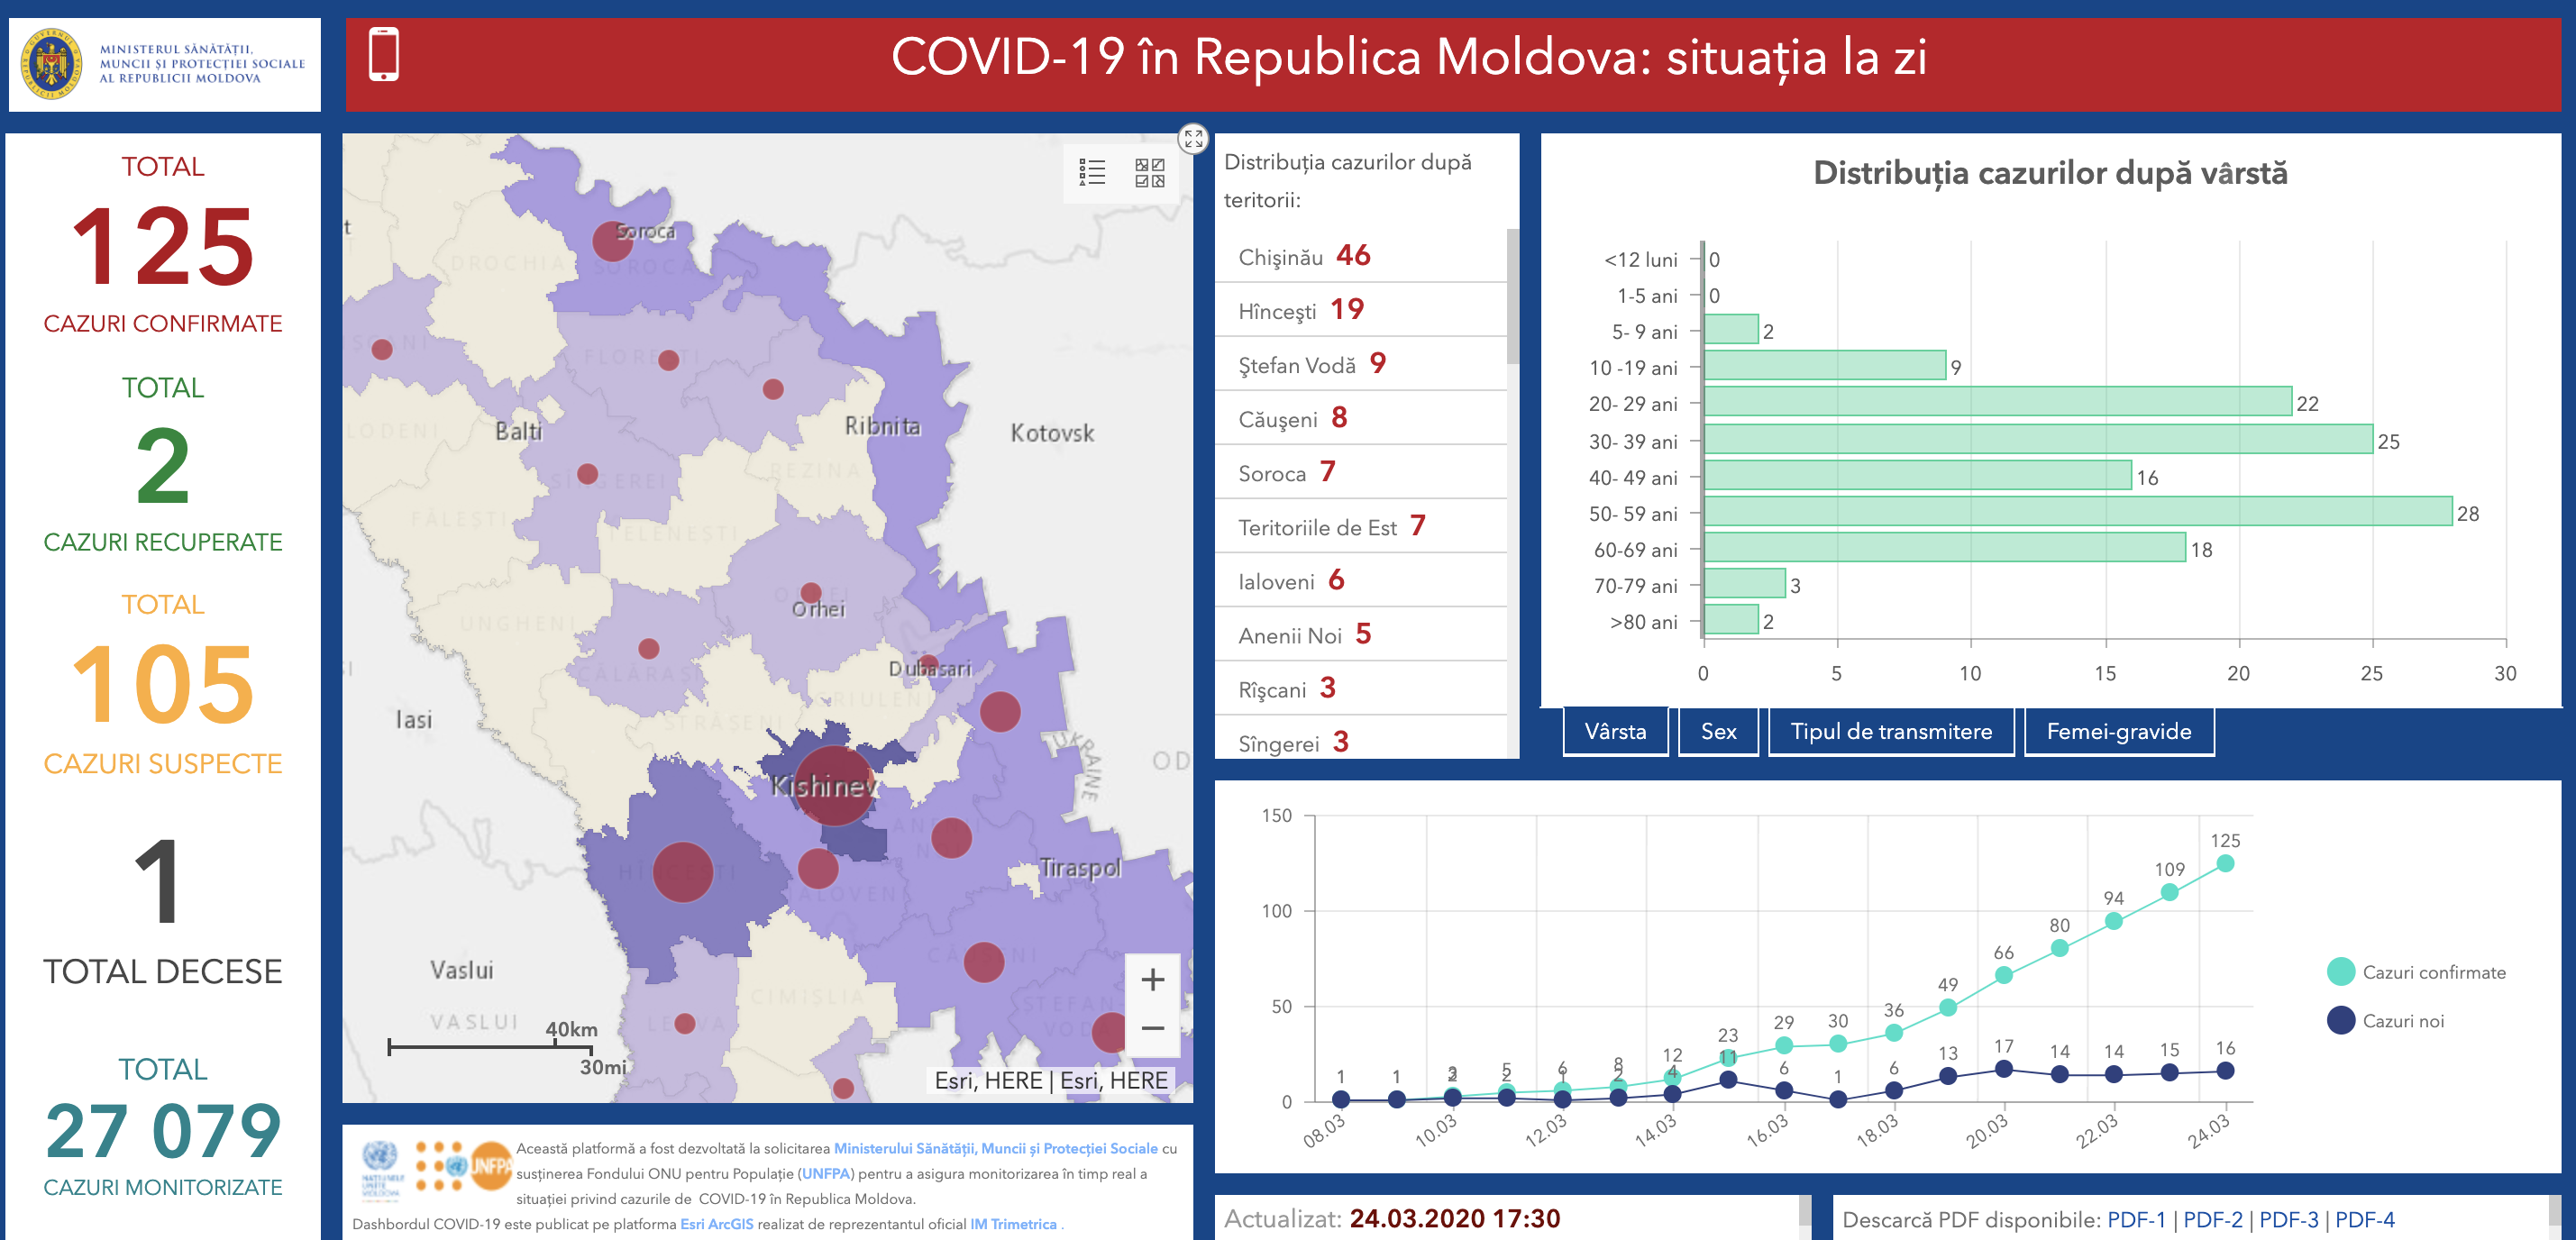 Shows the dashboard, which includes key figures, a map and graphs indicating the latest COVID-19 data.